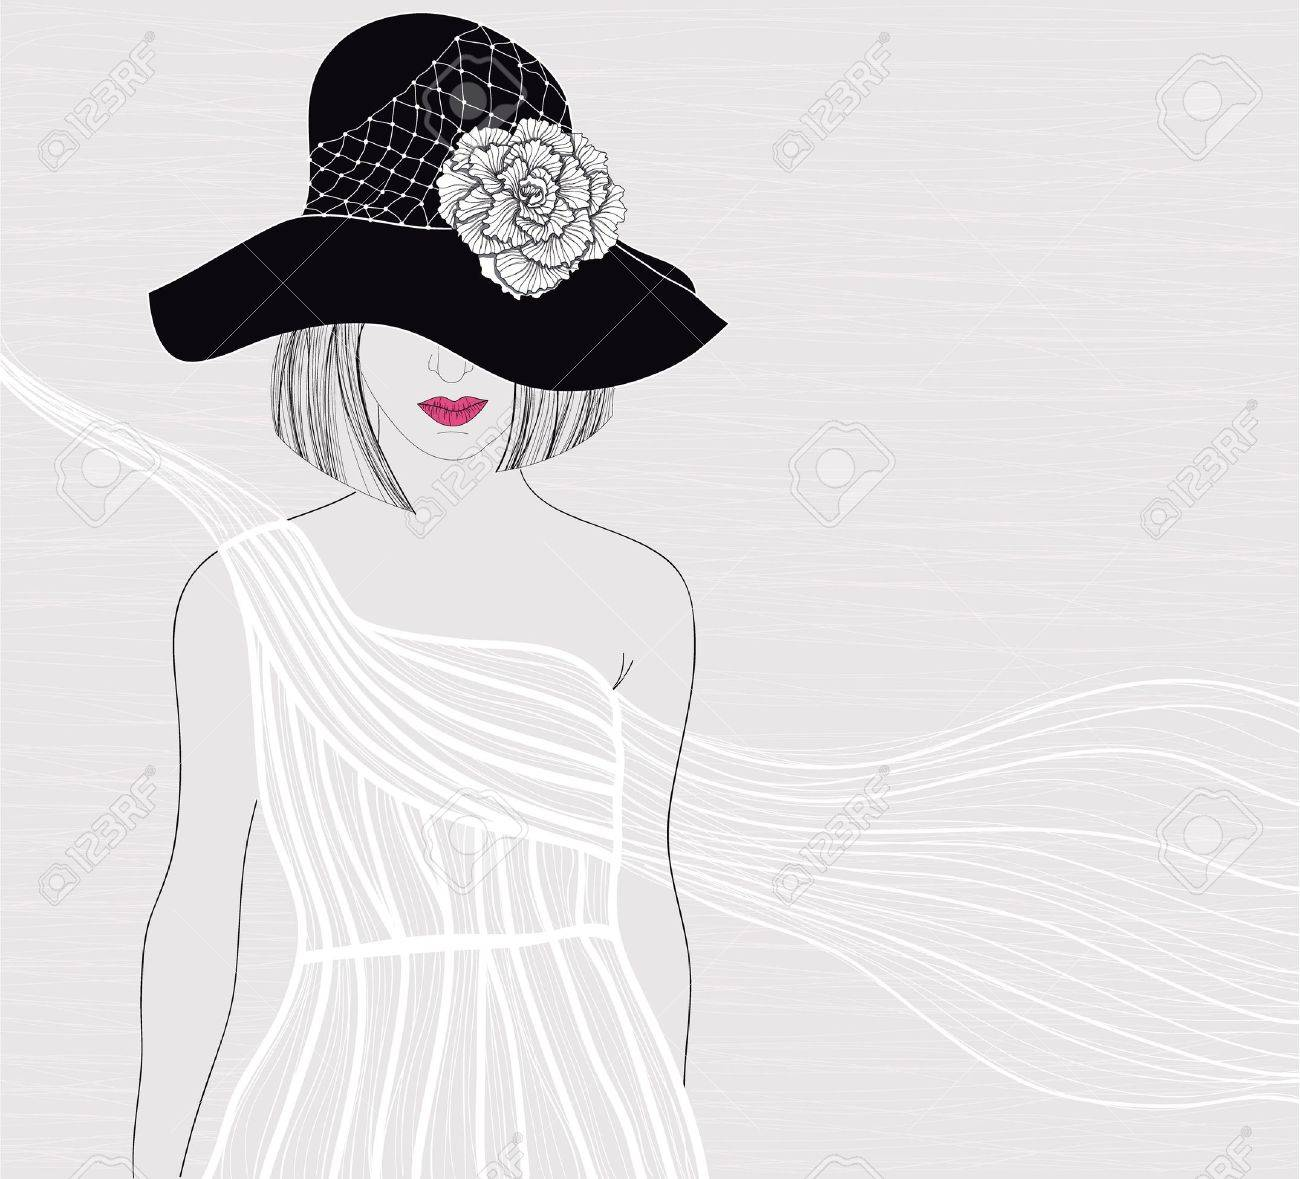 White dress drawing - Elegant Background With Women In Beautiful White Dress Female With Hat And Flower On It